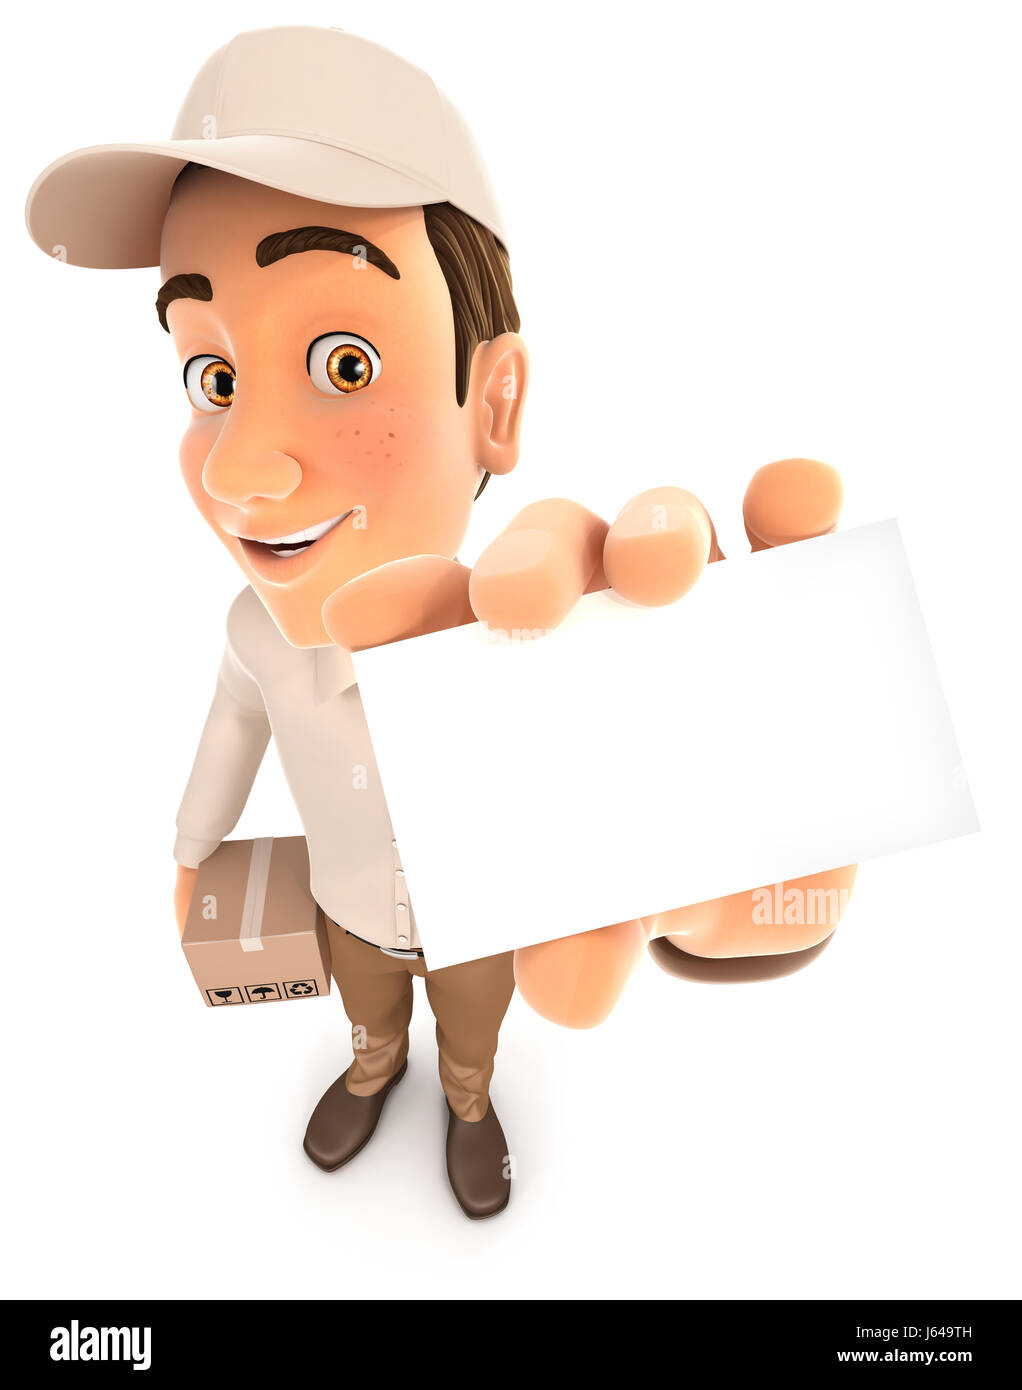 3d delivery man holding company card, illustration with isolated white background Stock Photo